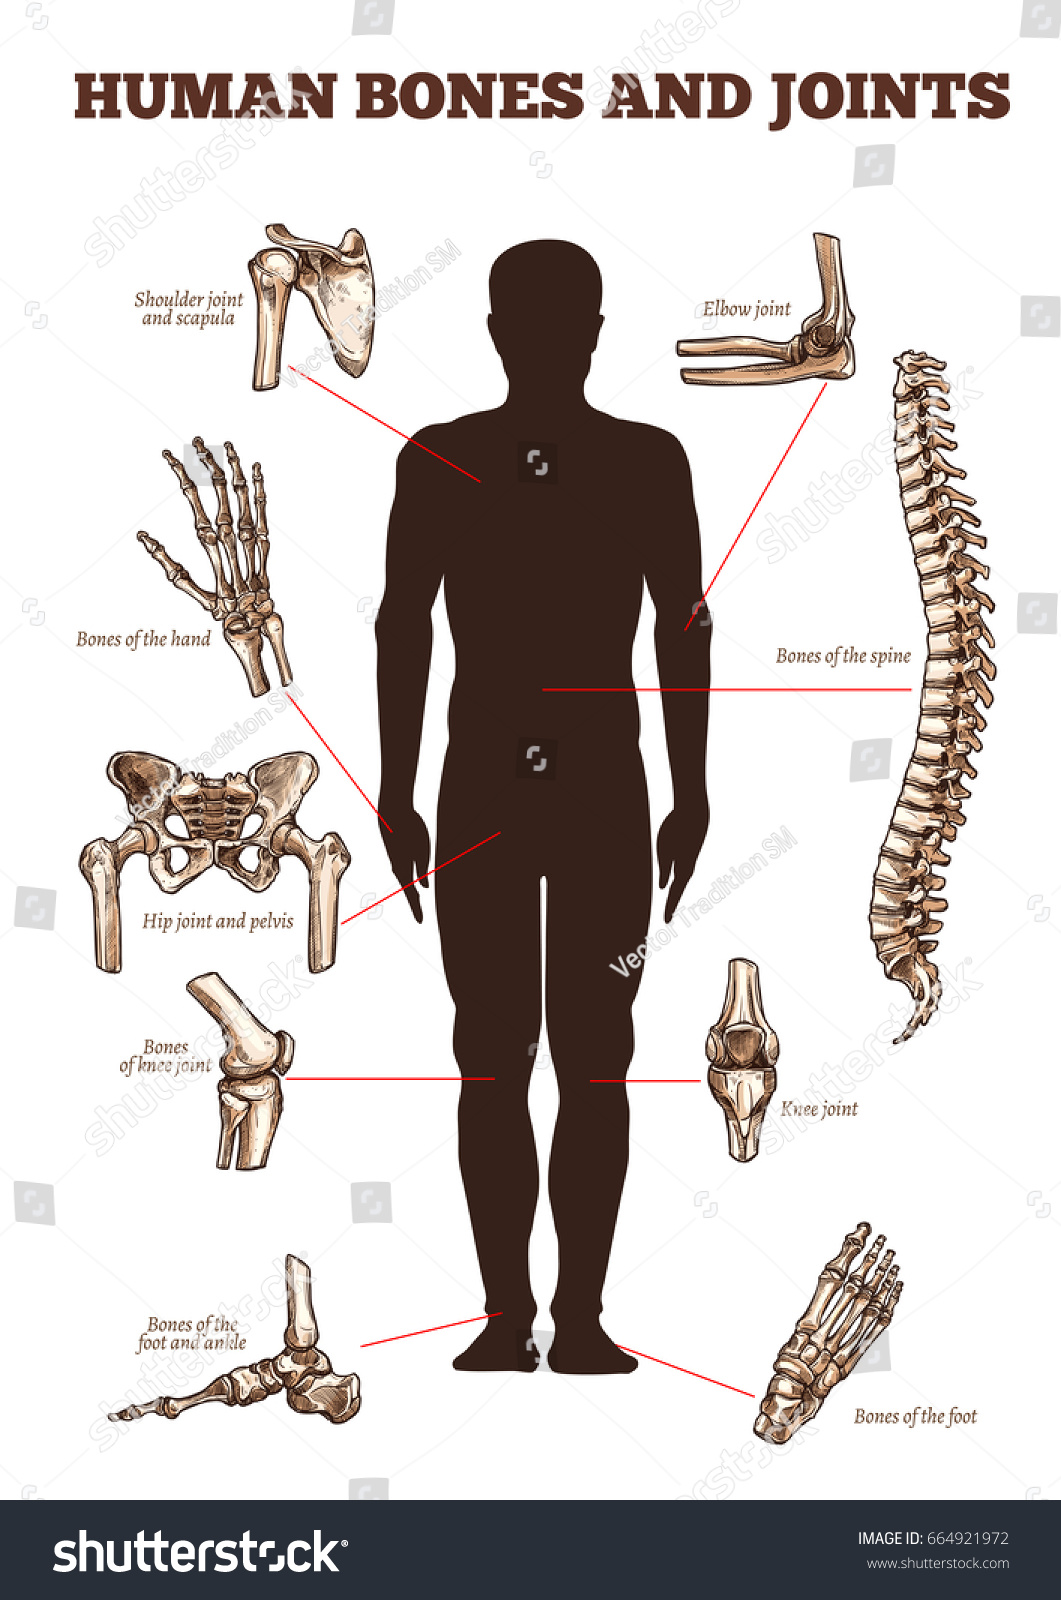 Human Bones Joints Vector Medical Anatomy Stock Photo (Photo, Vector ...